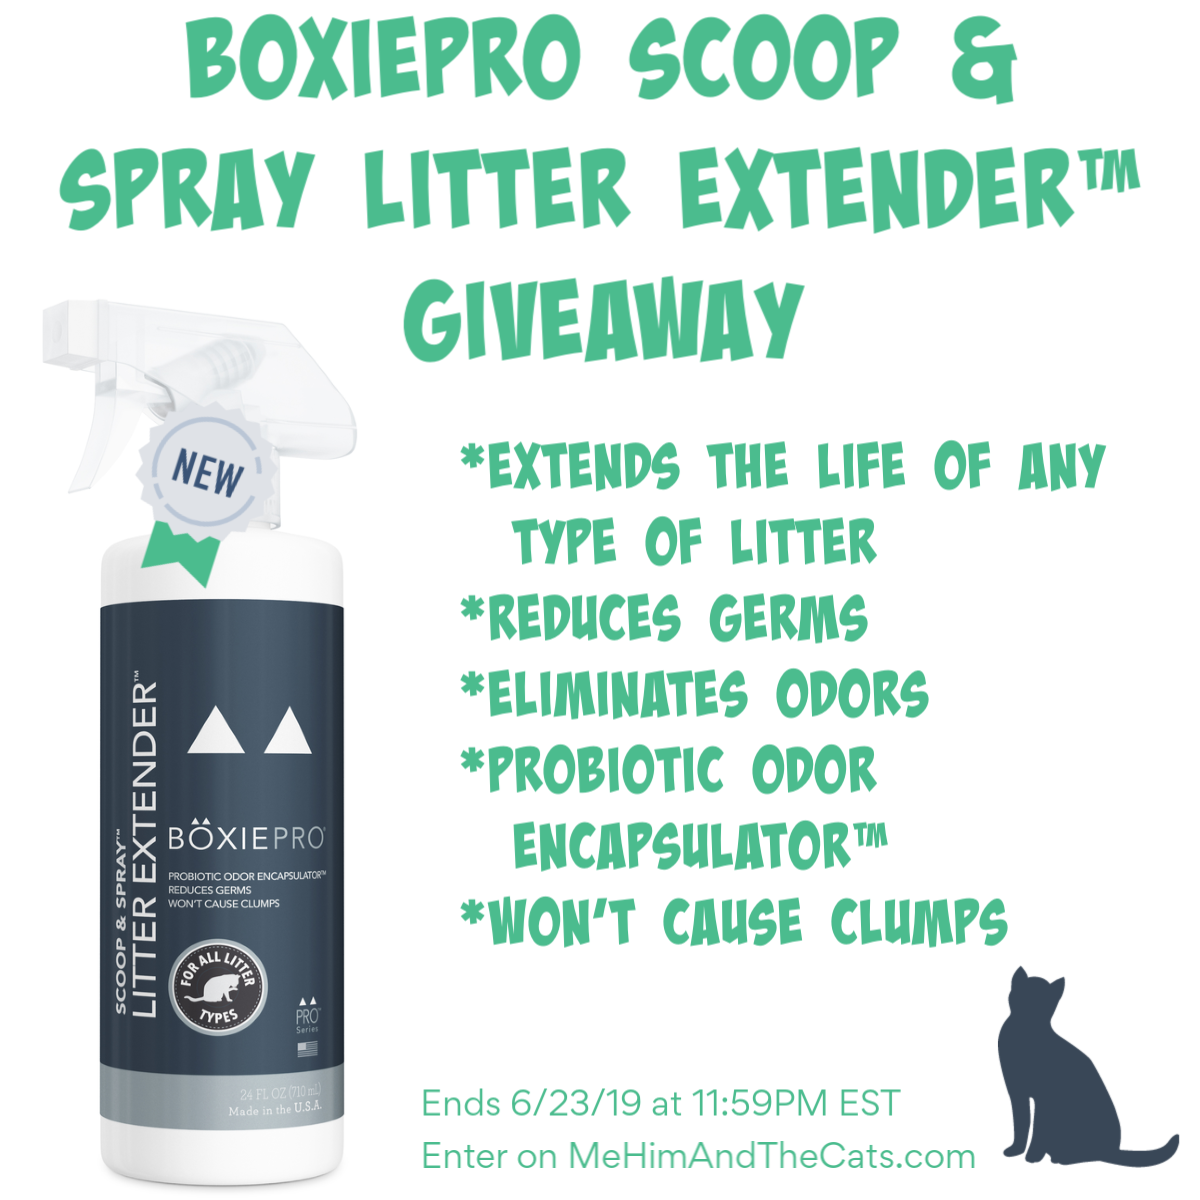 Enter for a chance to win the BoxiePro Scoop & Spray Litter Extender�. Giveaway Image